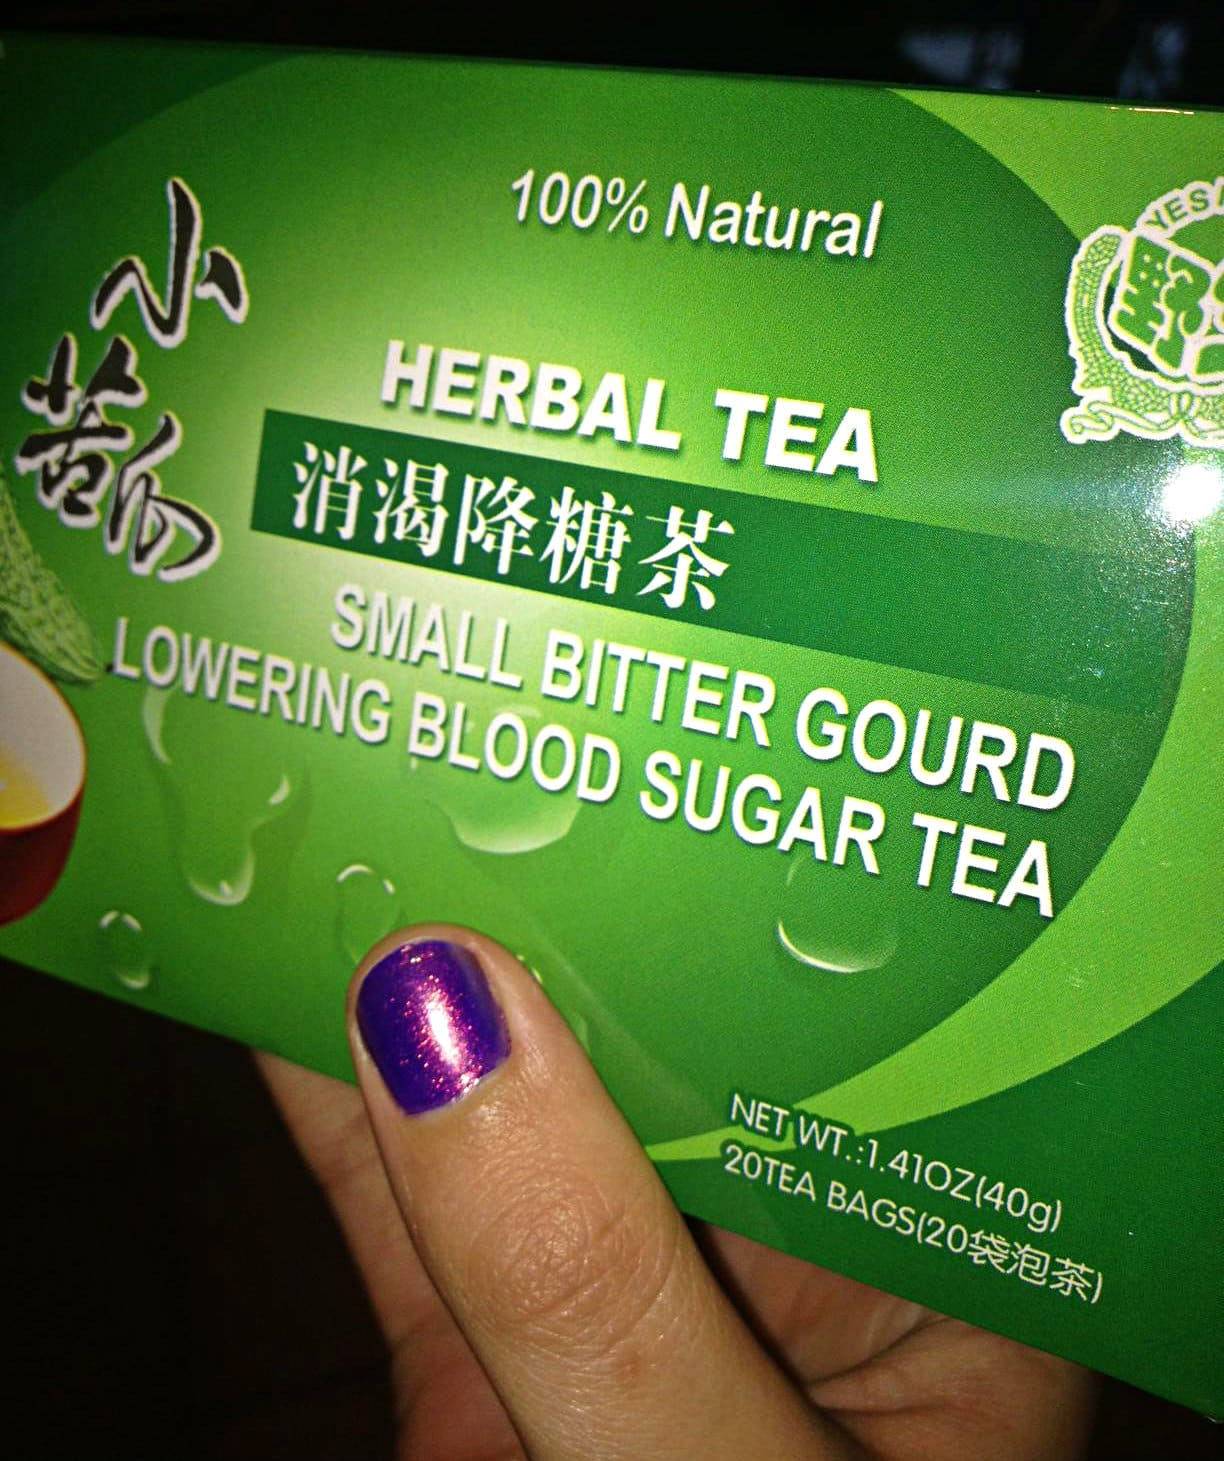 Bitter Gourd blood sugar lowering tea